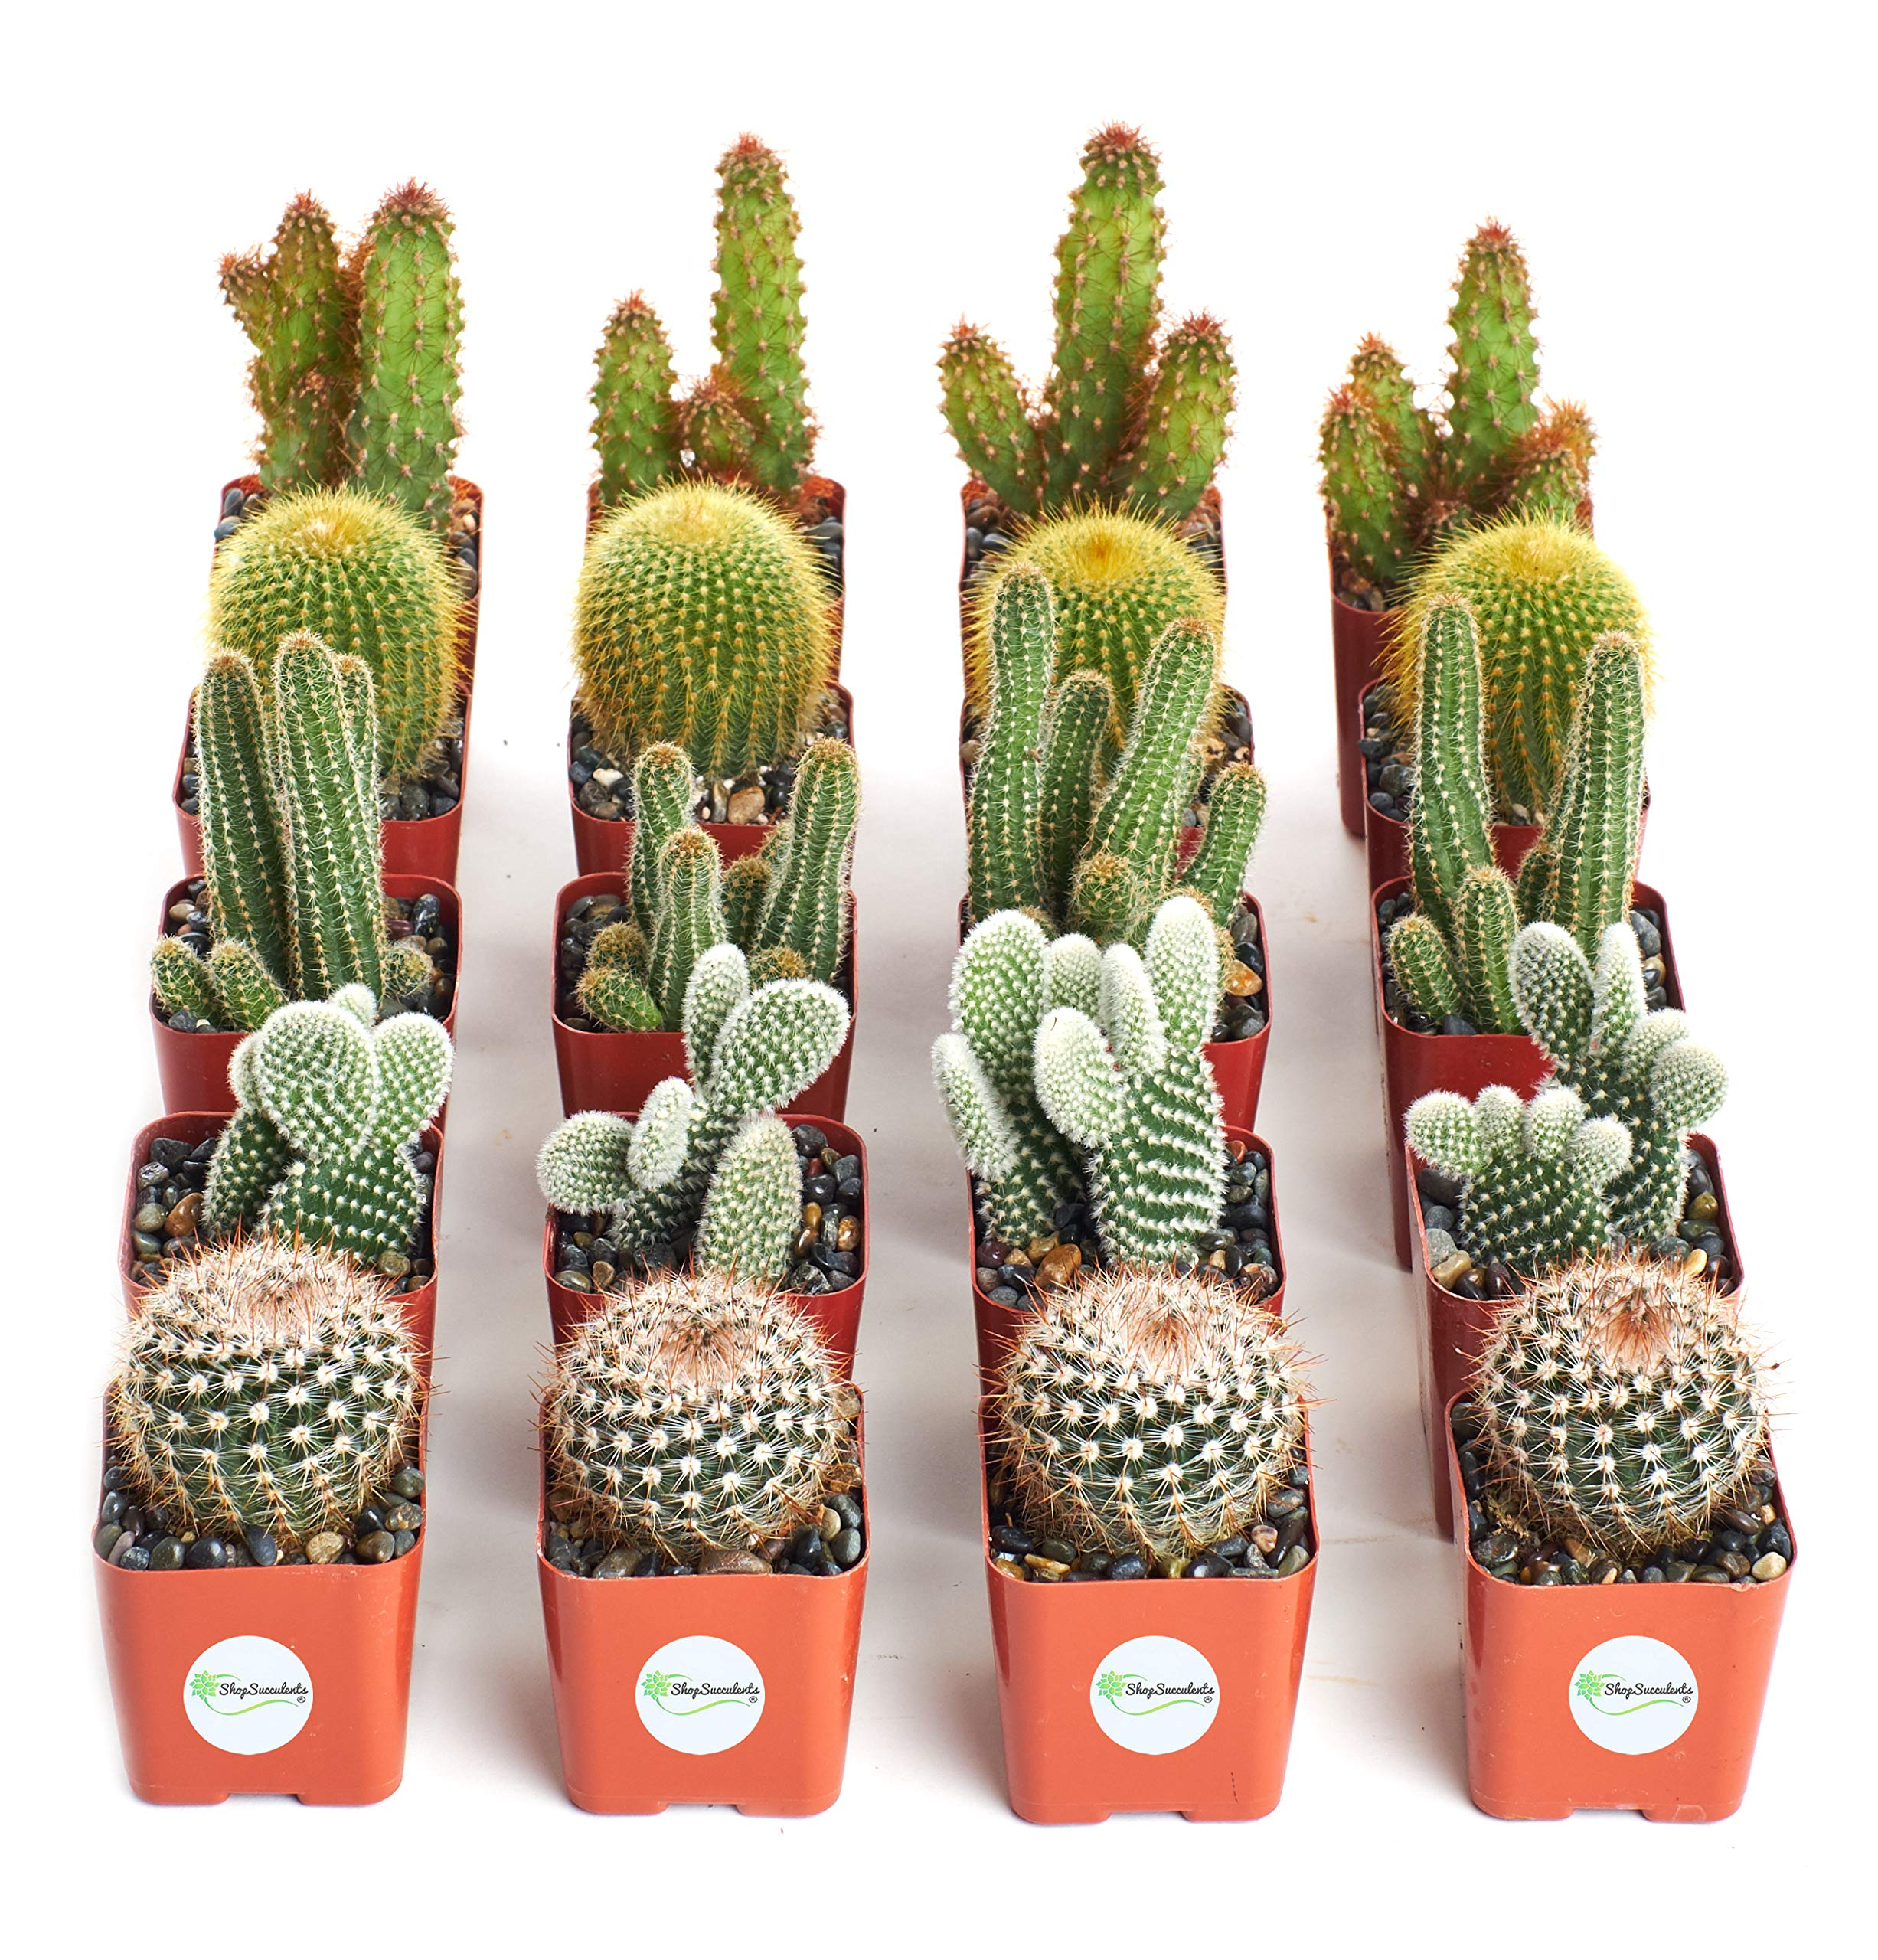 Shop Succulents | Cool Cactus Collection of Live Succulent Plants, Hand Selected Variety Pack of Cacti | Collection of 20 by Shop Succulents